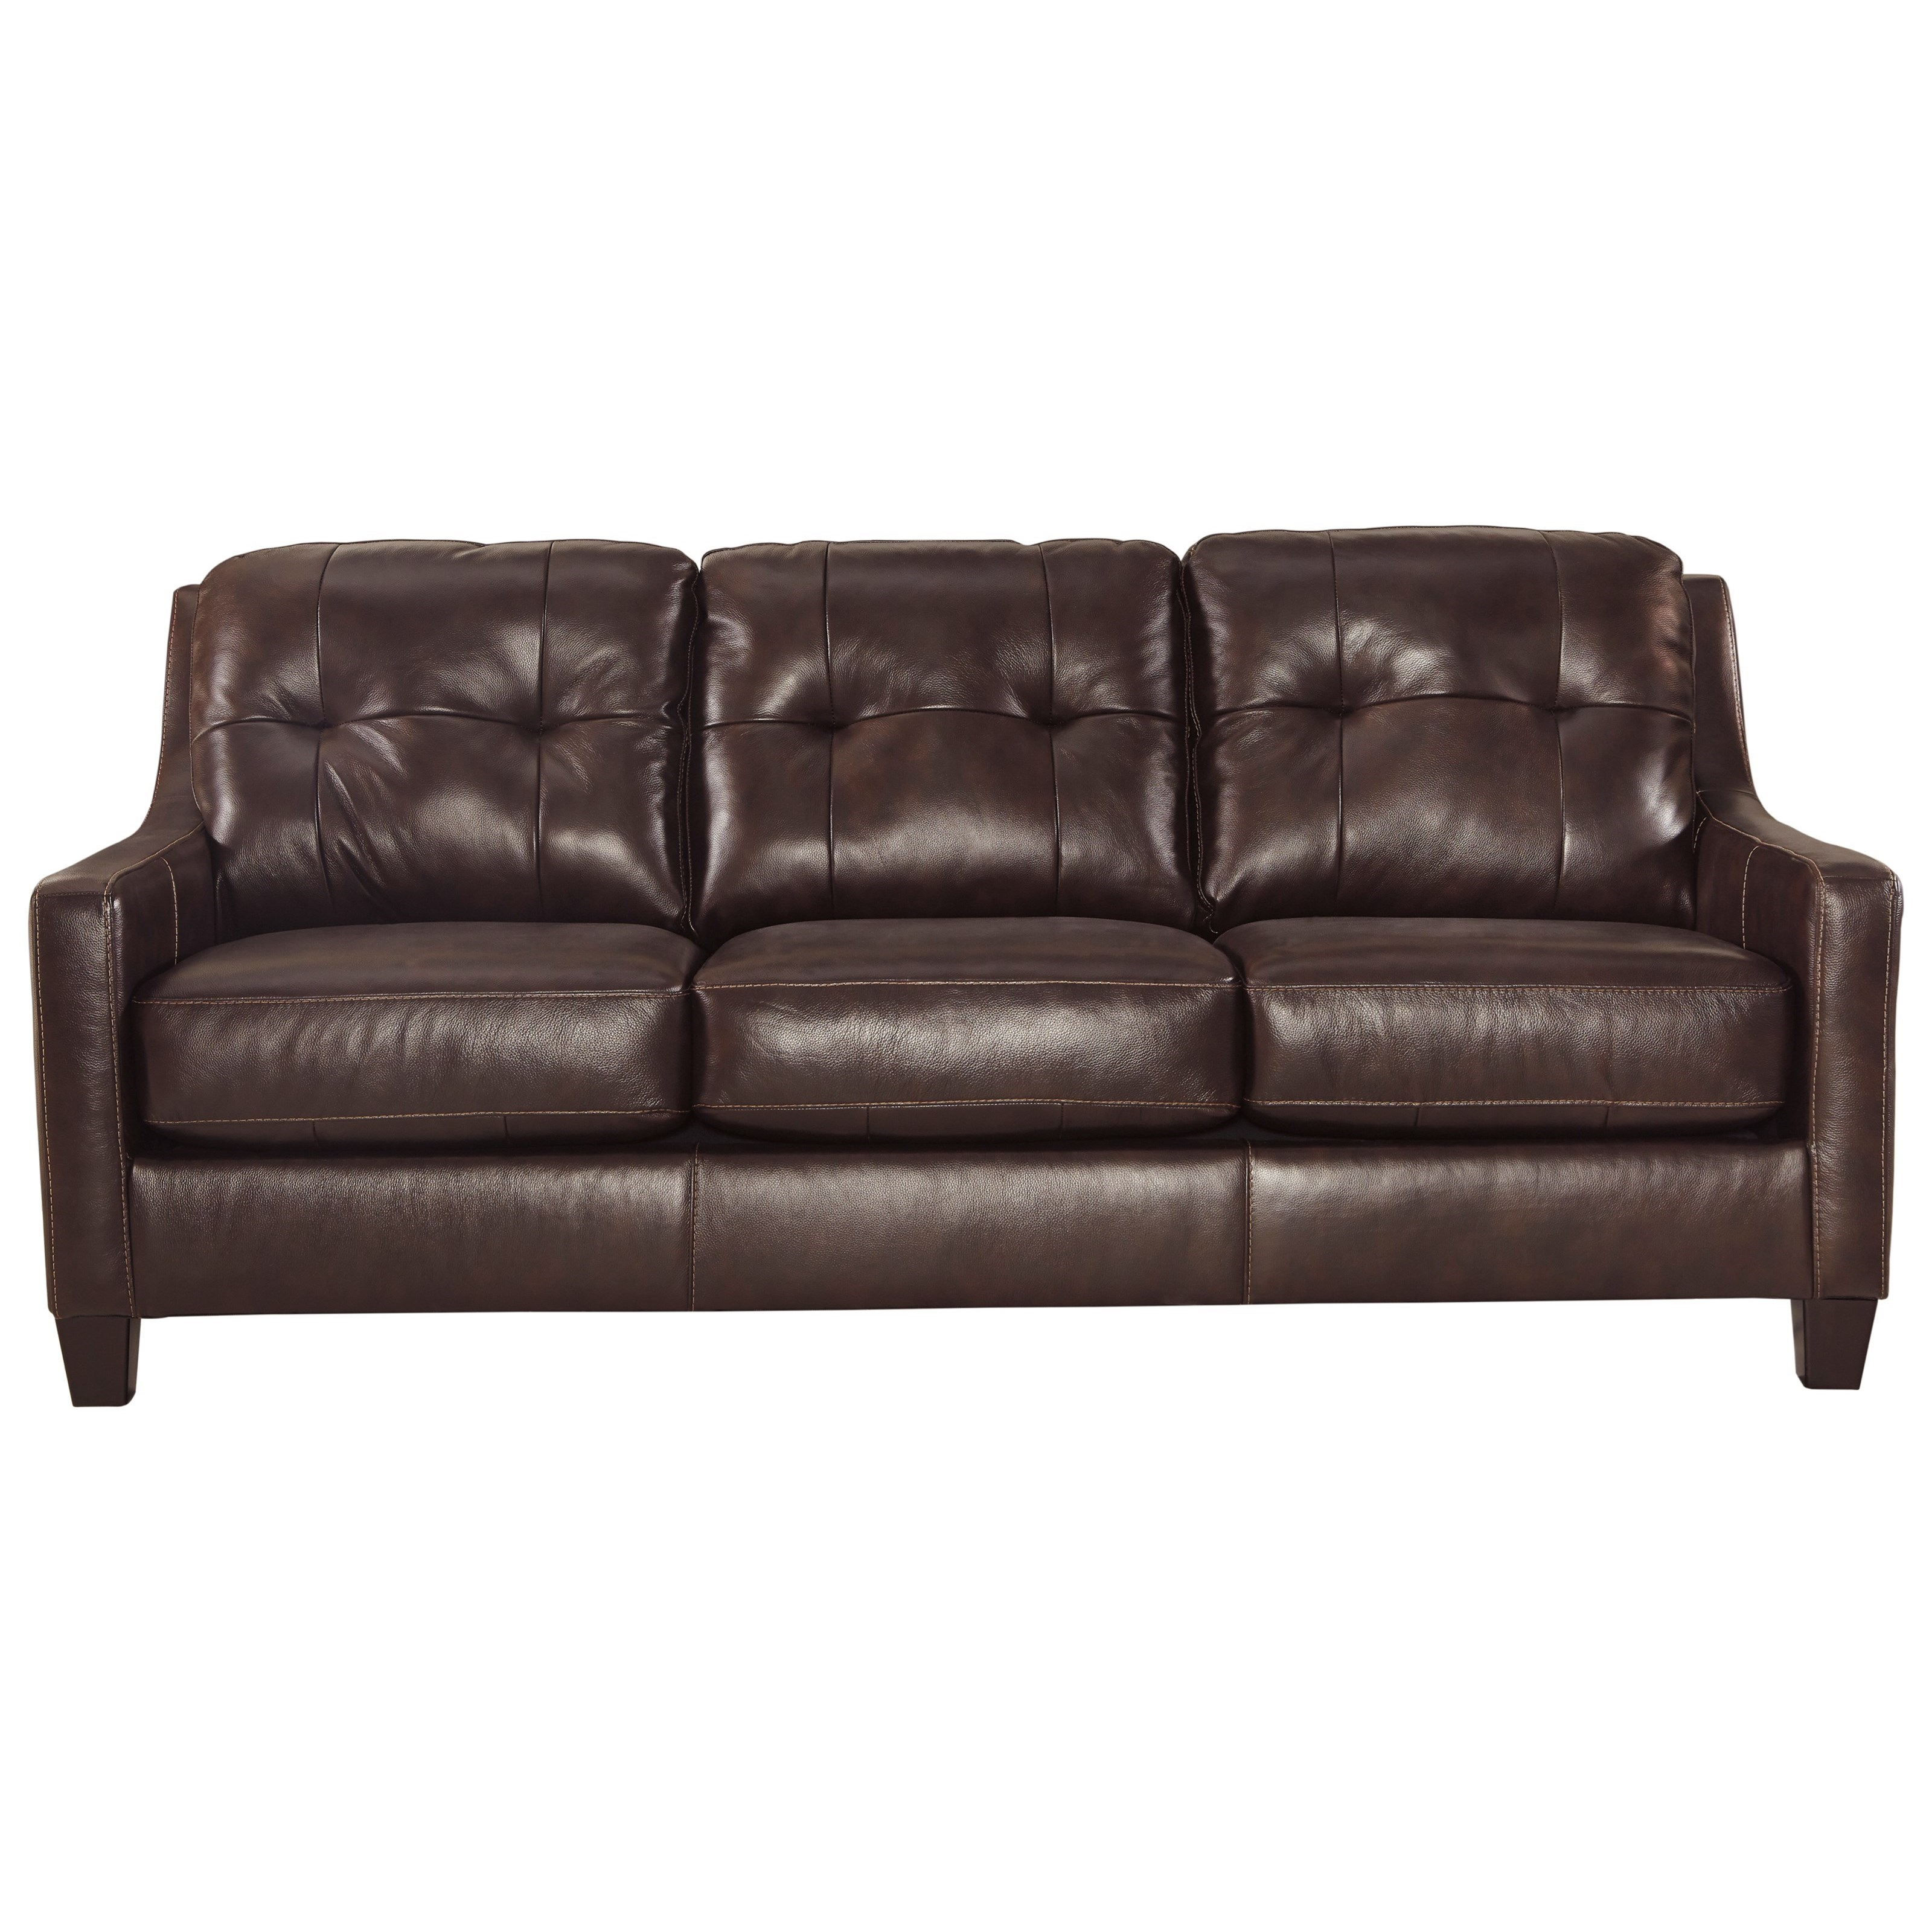 Contemporary leather match queen sofa sleeper by signature design by ashley wolf and gardiner Contemporary leather sofa